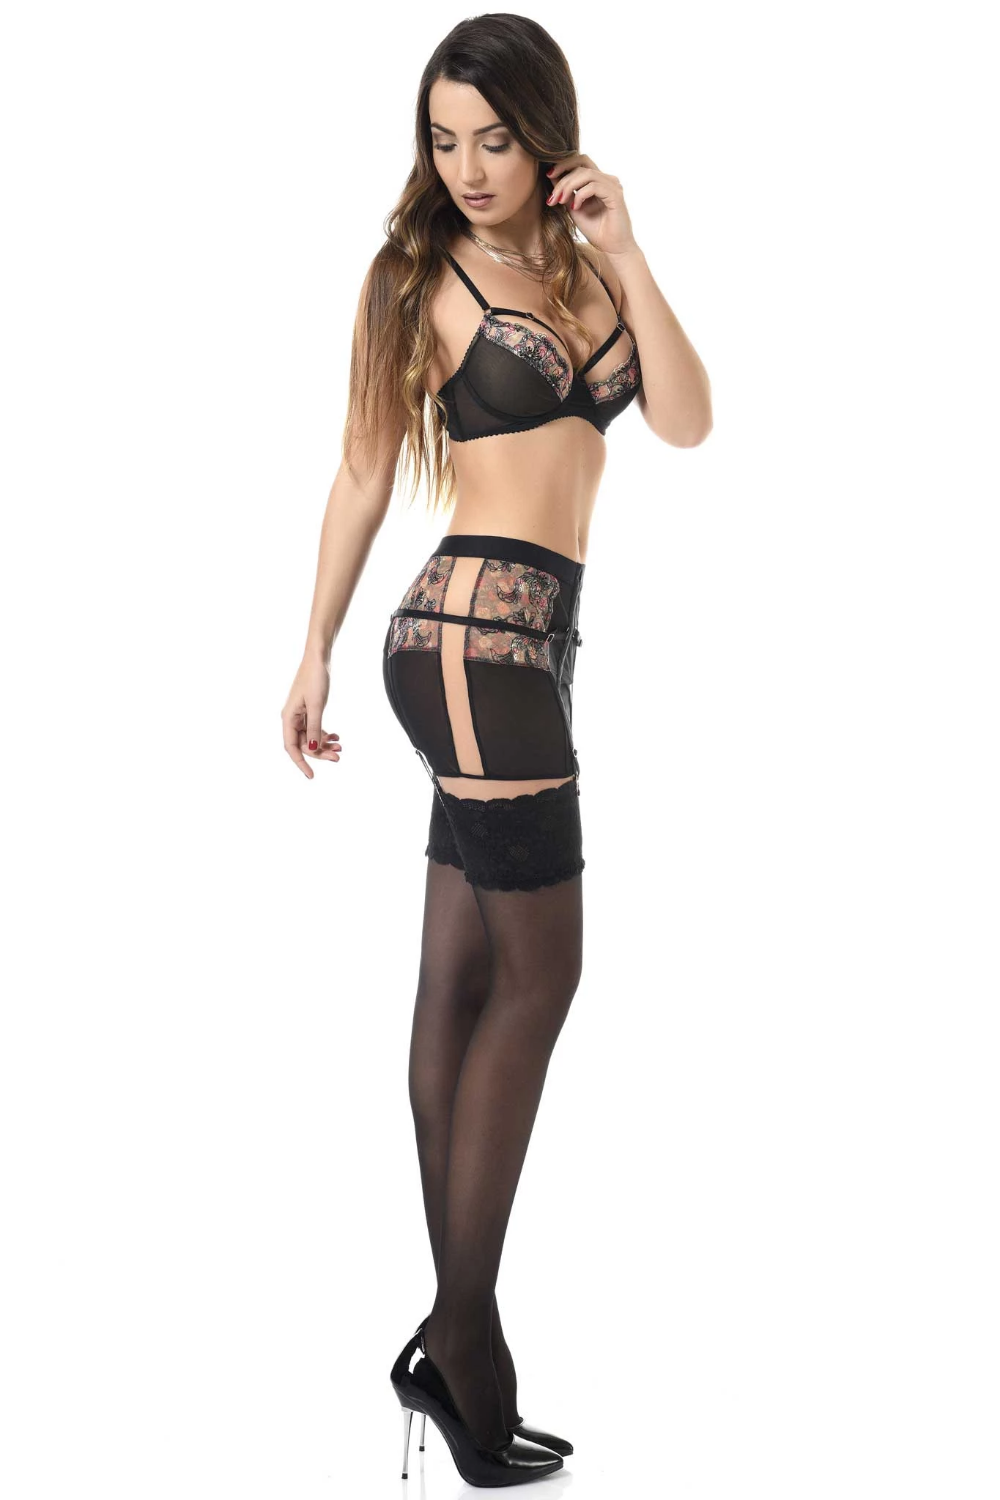 professional sale later fashion styles Pin on French Luxury Lingerie • Impudique